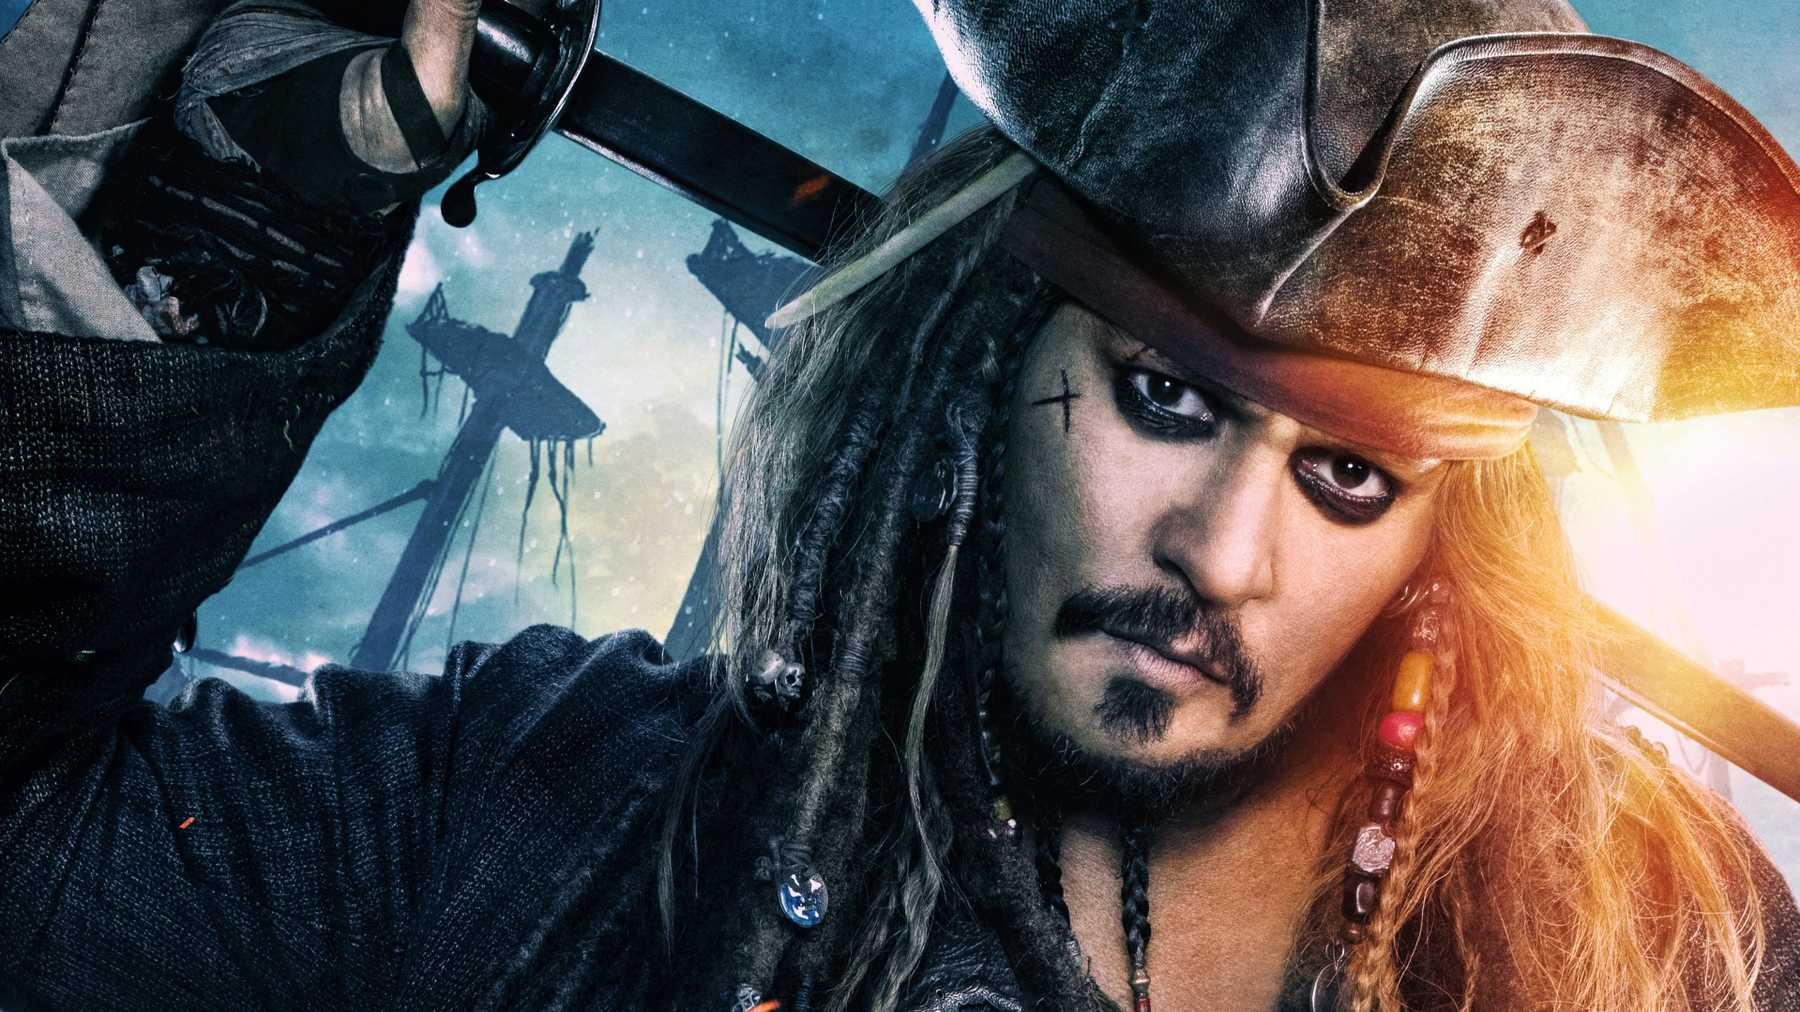 Johnny Depp in Pirates 6 and other Movies